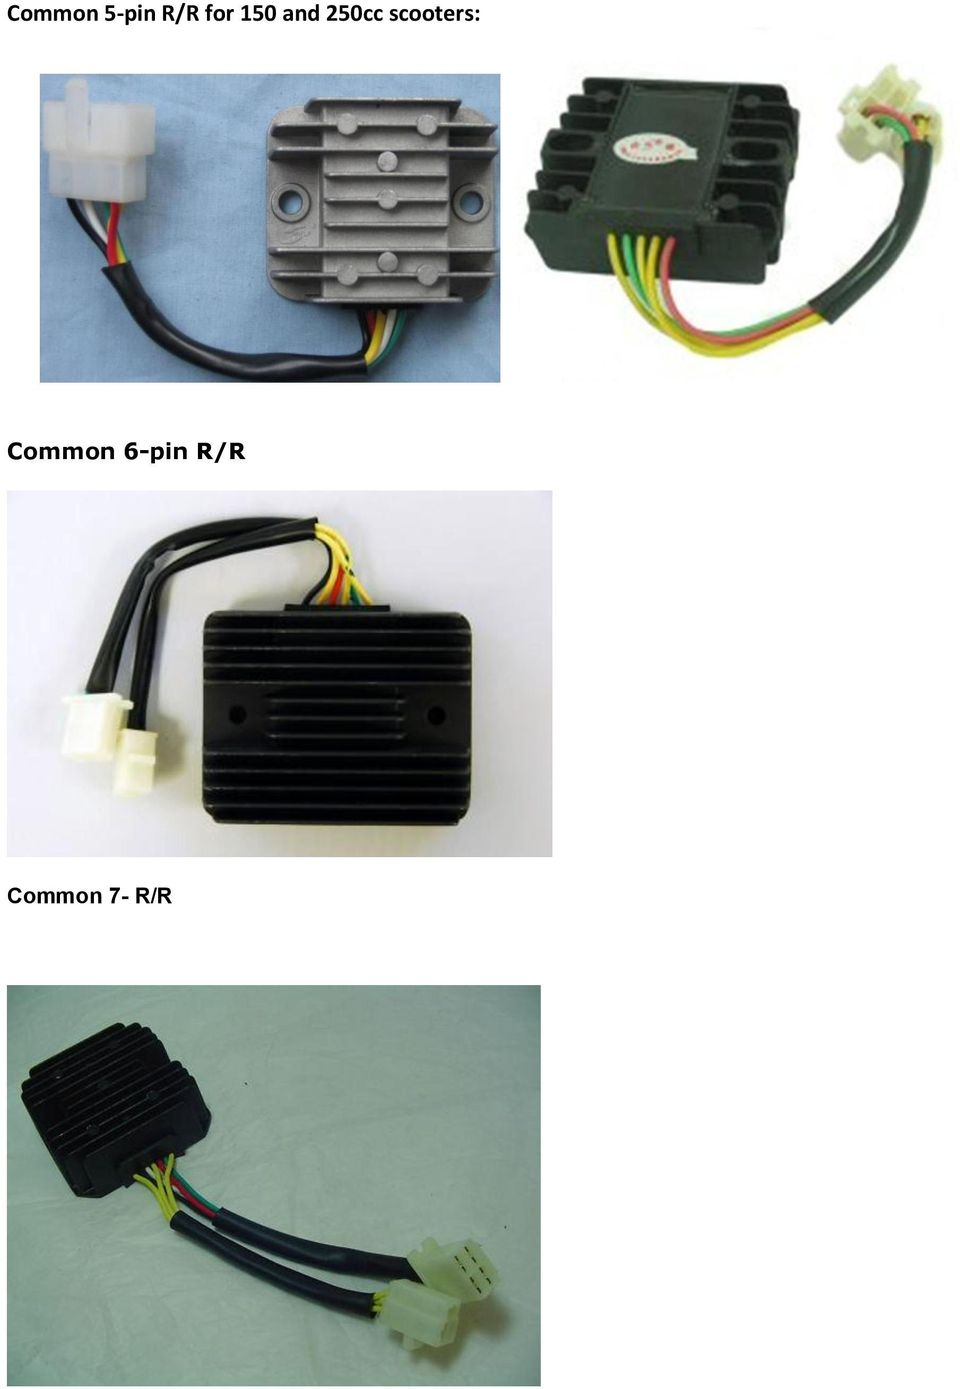 8 Coil Stator 11 Pdf 6 Pin Wiring Harness Scooter Scooters Common